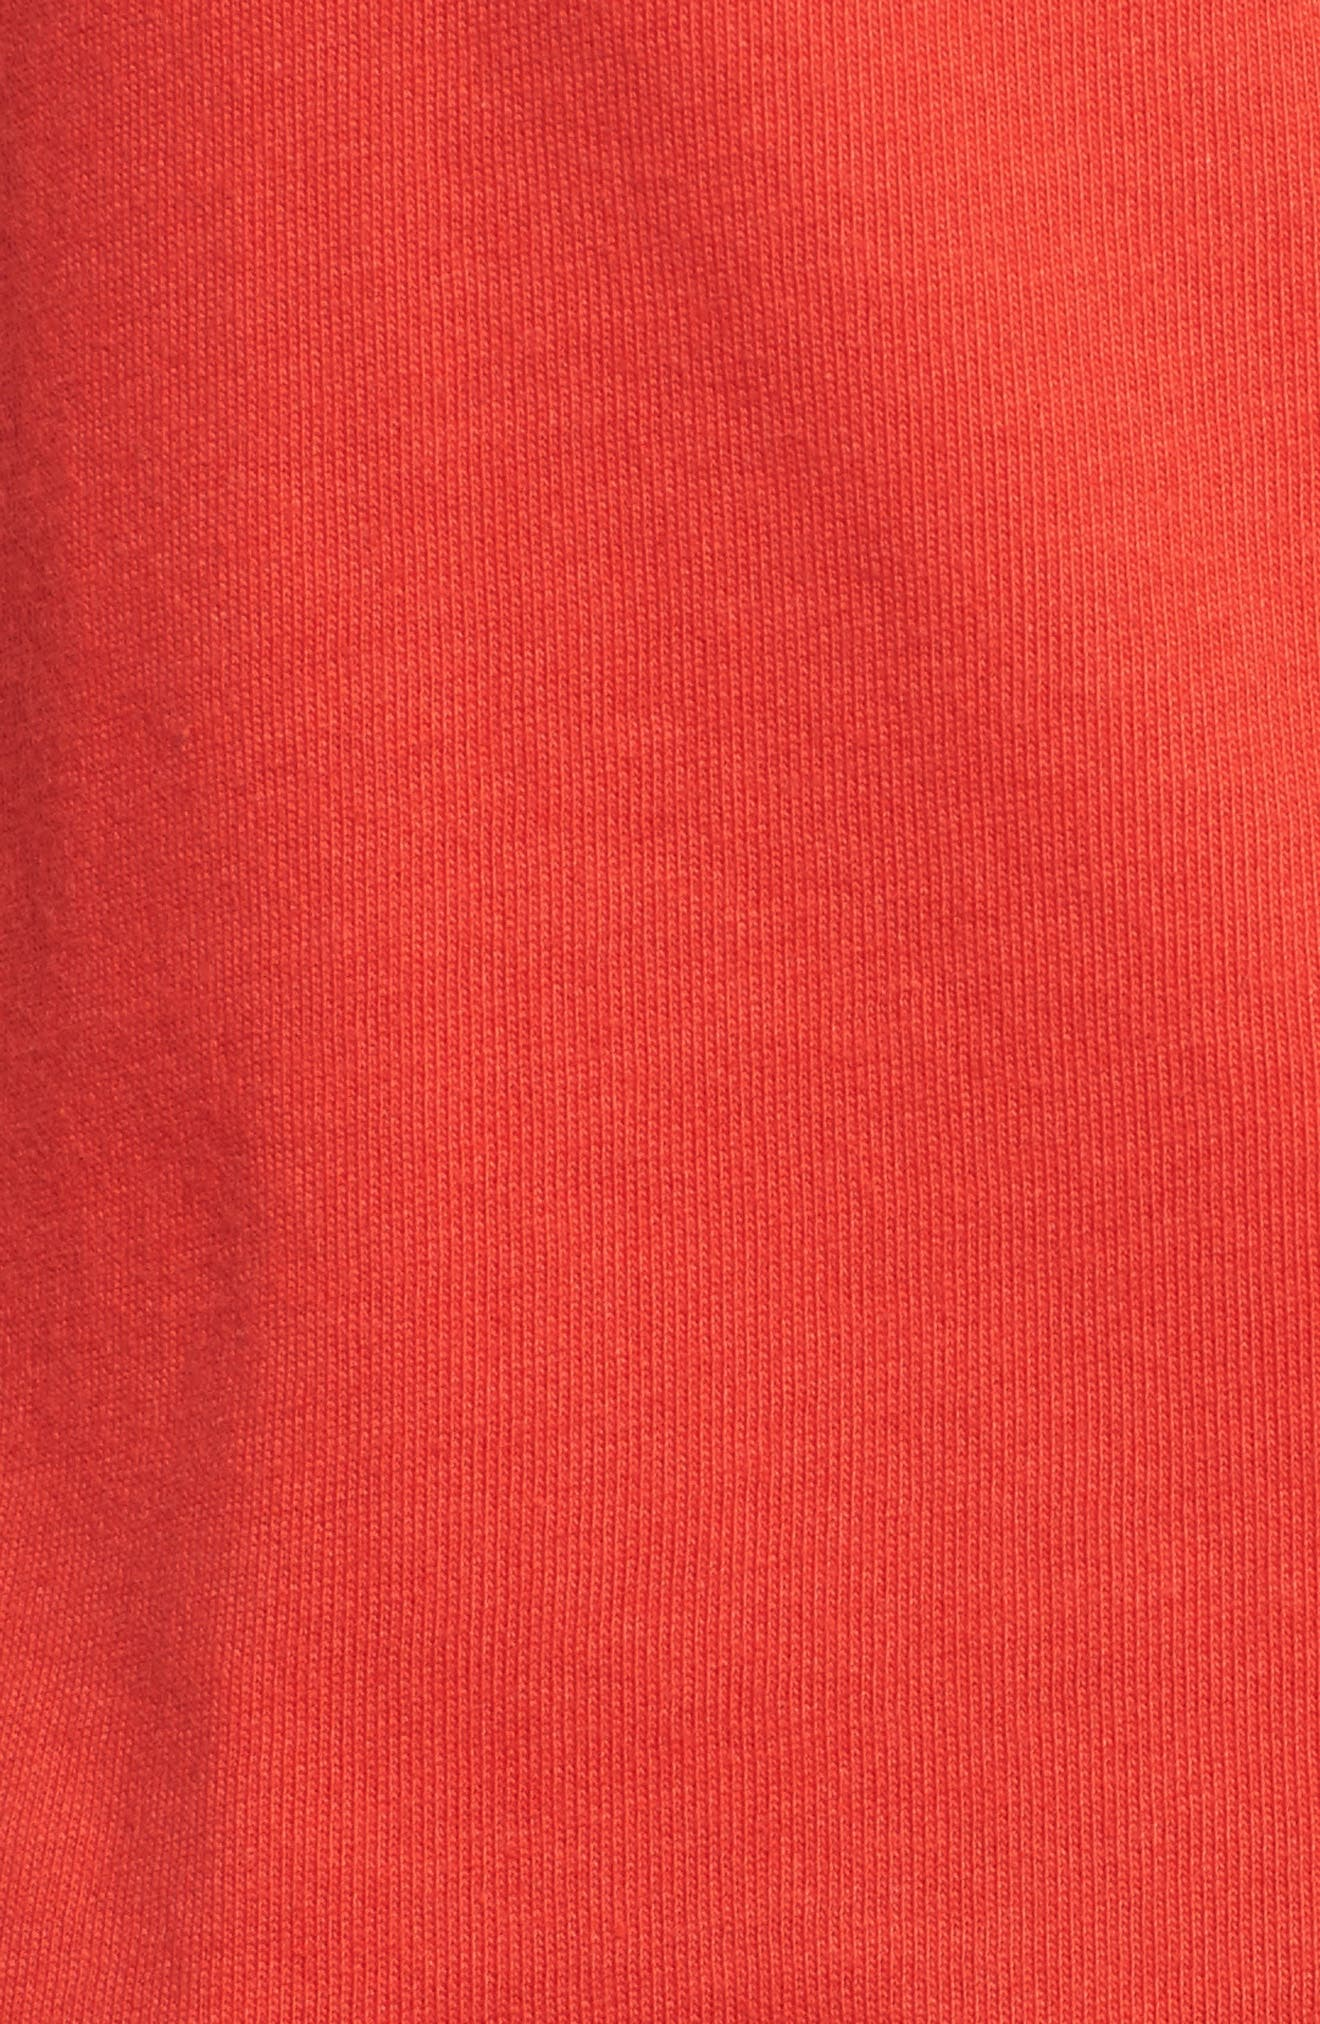 Sportswear Archive Crop Tank,                             Alternate thumbnail 6, color,                             Rush Red/ Sail